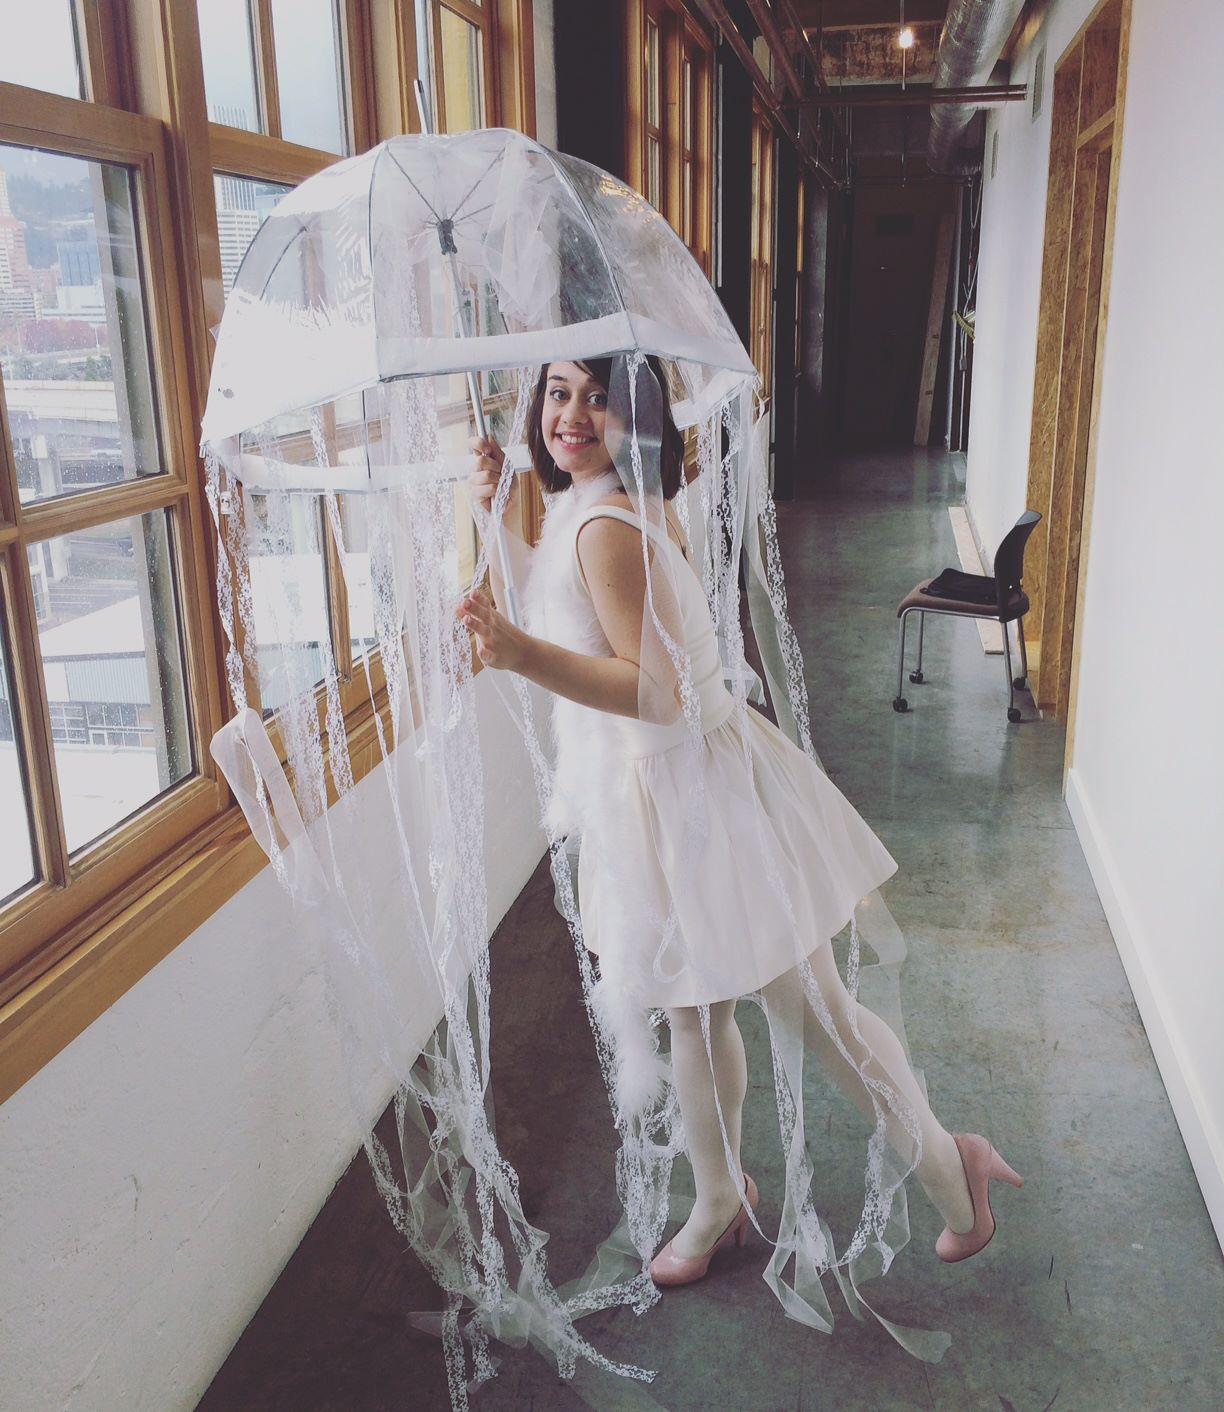 DIY Jellyfish Costume & LINDSTYLEFILES: How to Make a Jellyfish Costume in 6 Steps